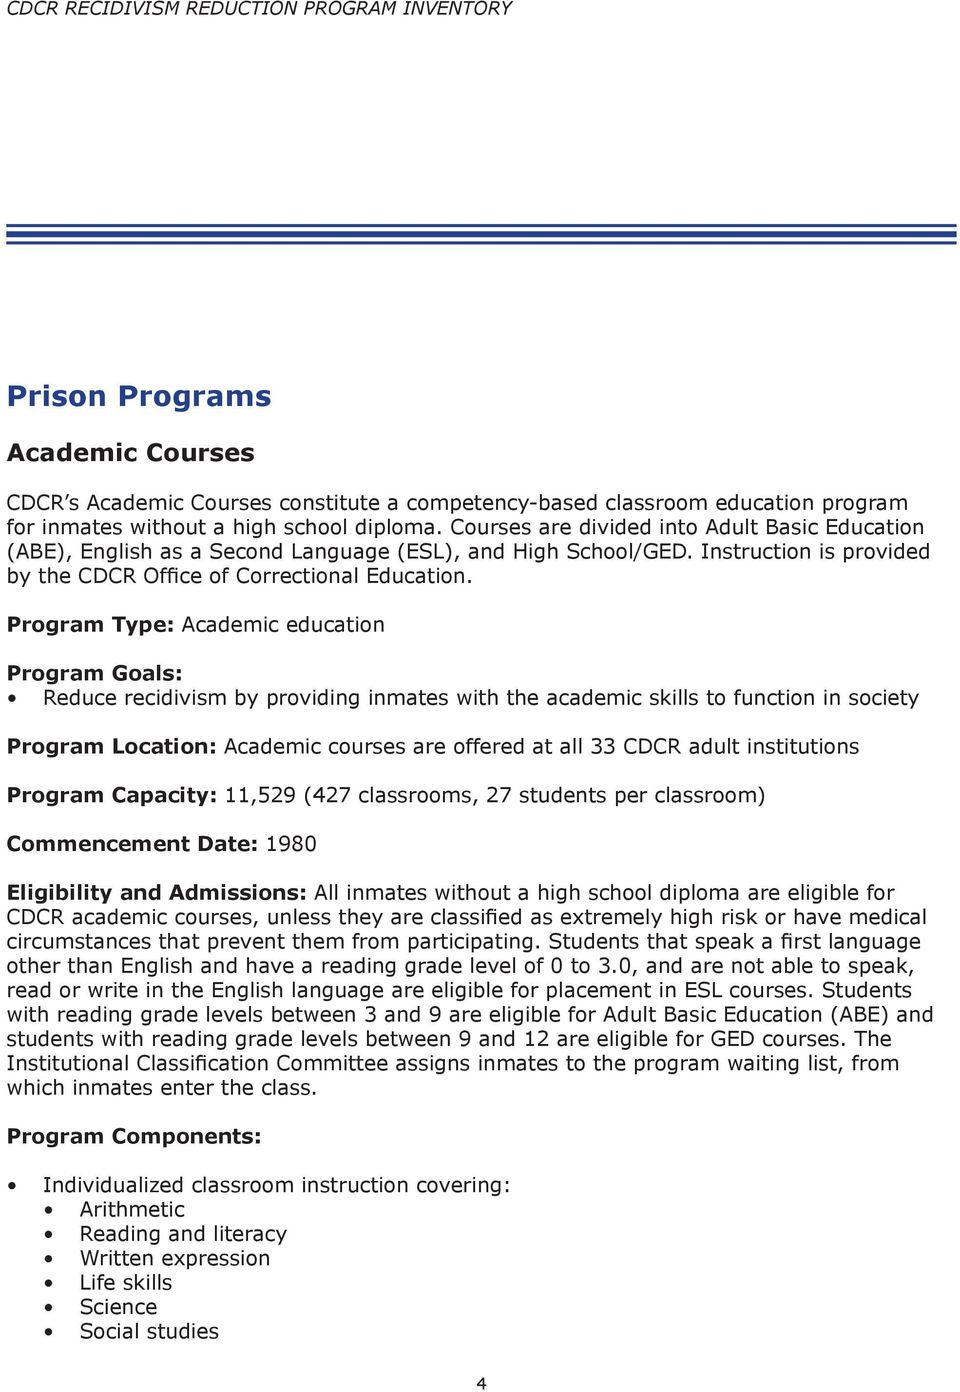 Program Type: Academic education Program Goals: Reduce recidivism by providing inmates with the academic skills to function in society Program Location: Academic courses are offered at all 33 CDCR